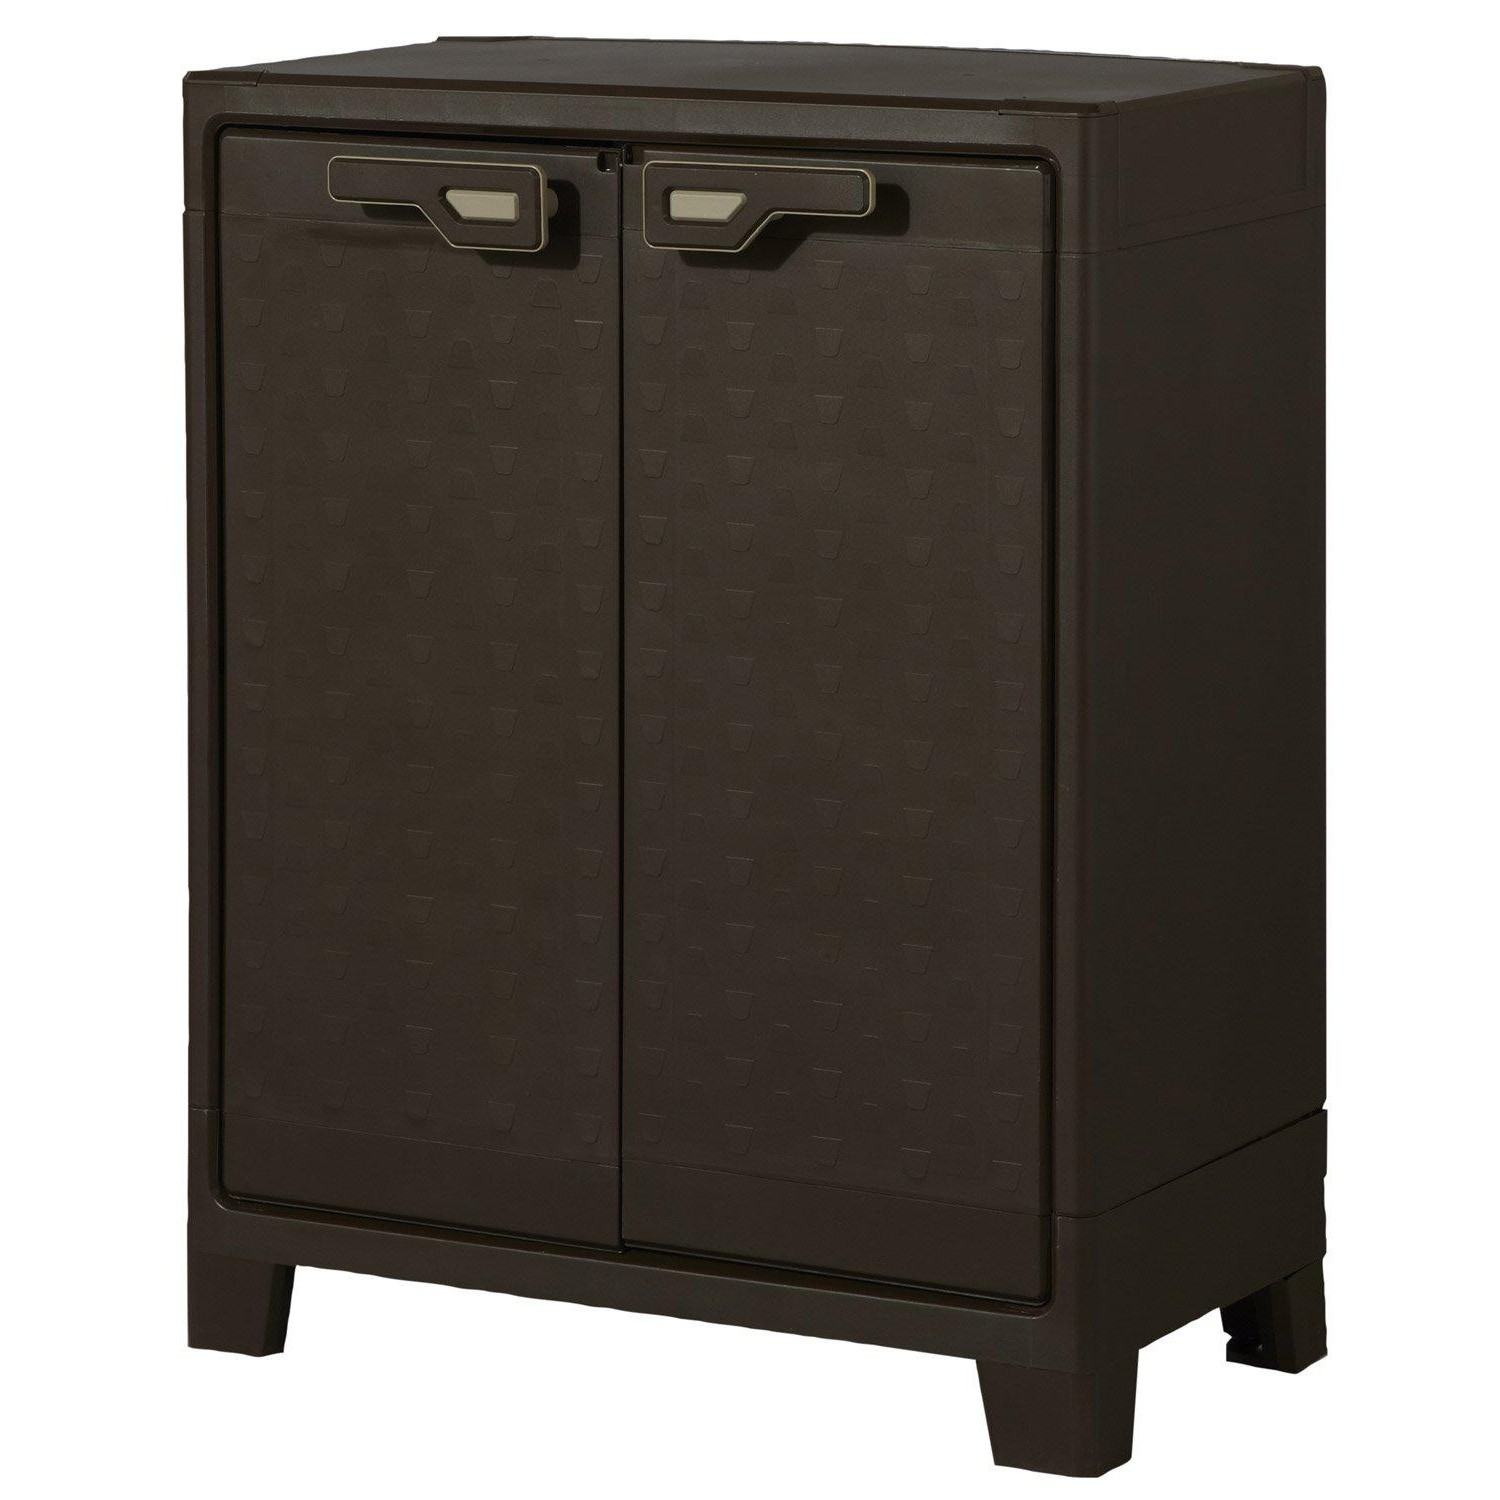 armoire toilette remix leroy merlin armoire plastique exterieur leroy merlin. Black Bedroom Furniture Sets. Home Design Ideas